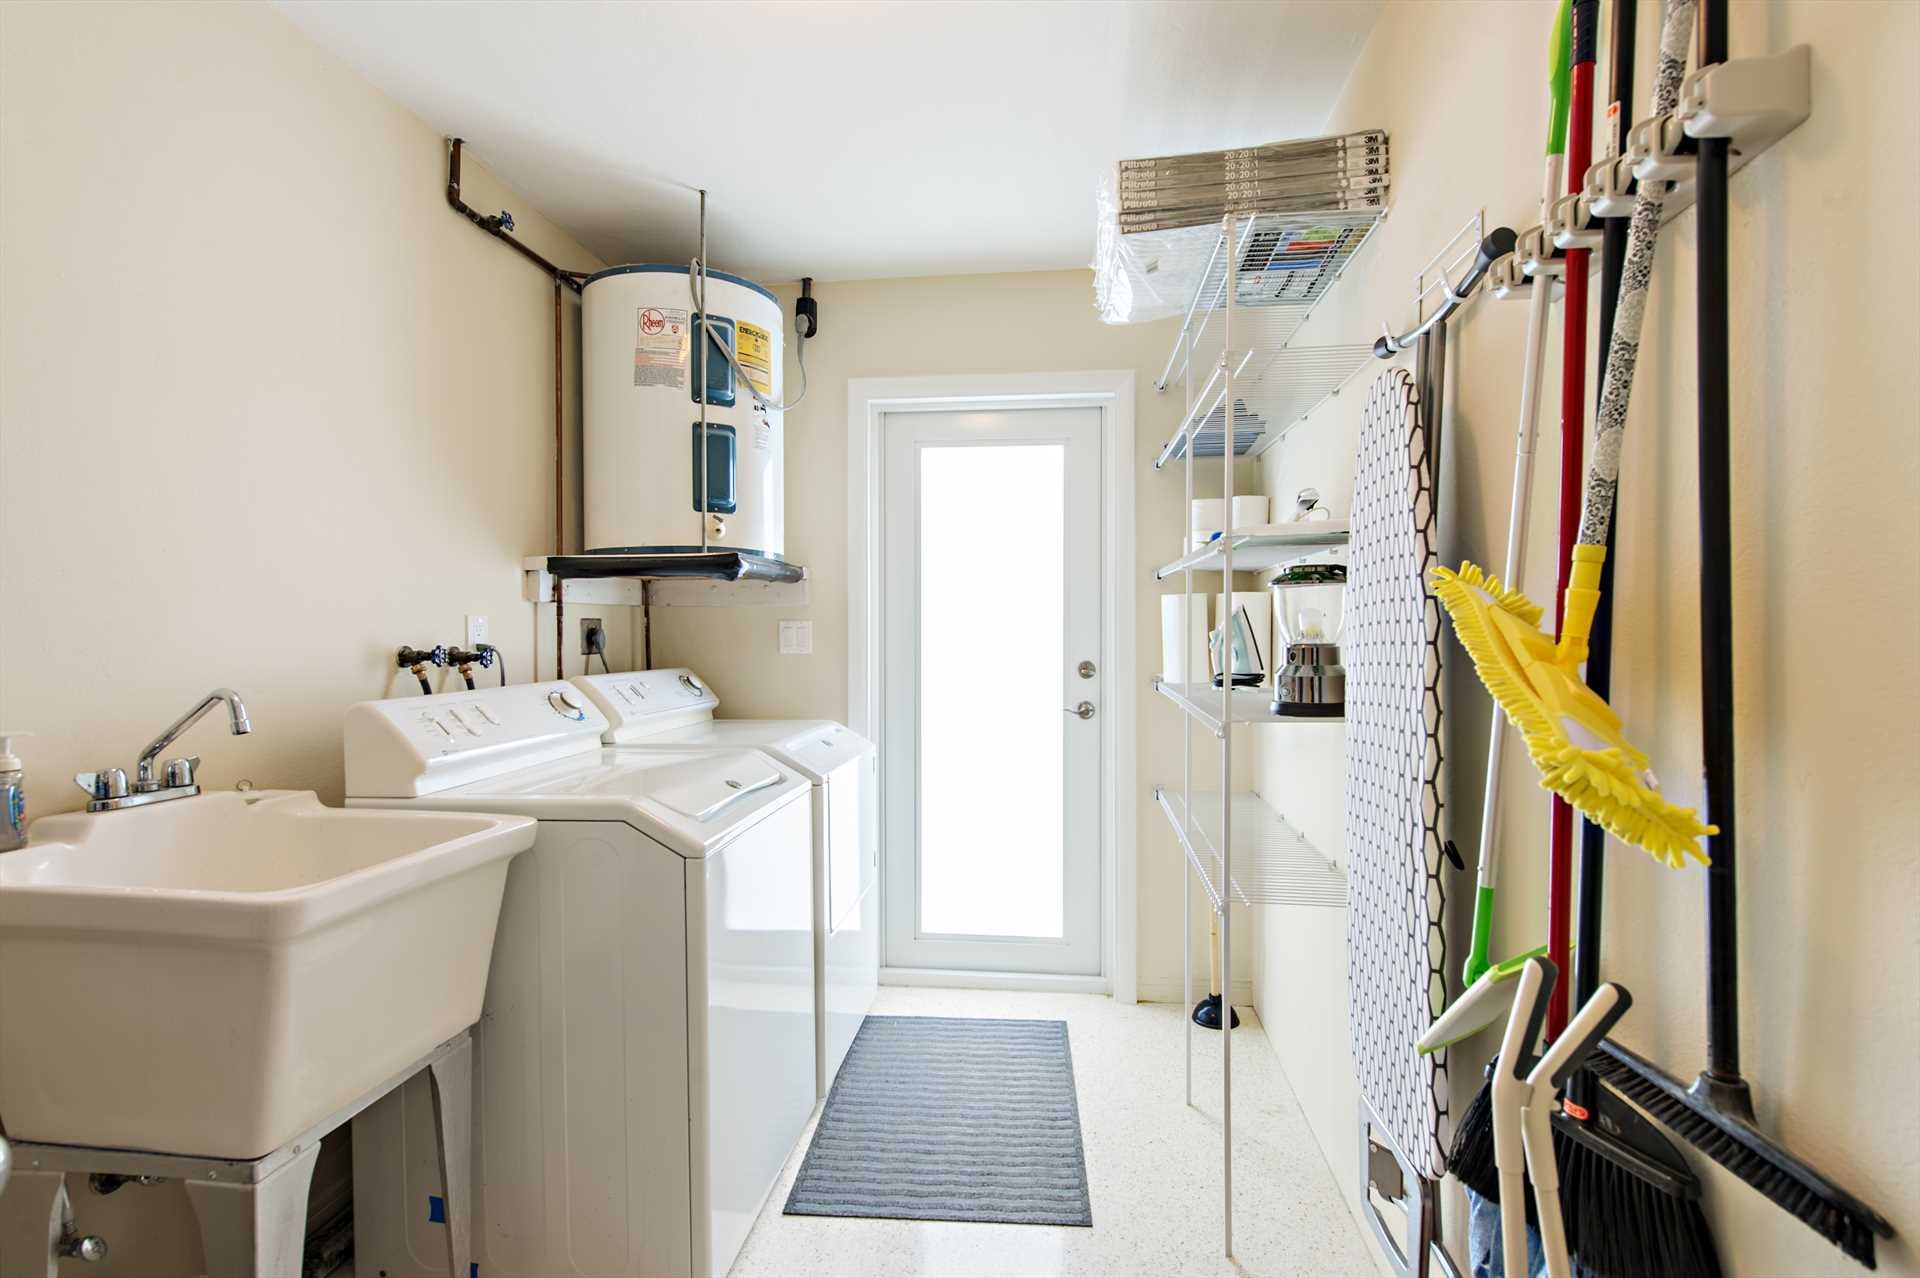 Utility room has new washer and dryer for your use.